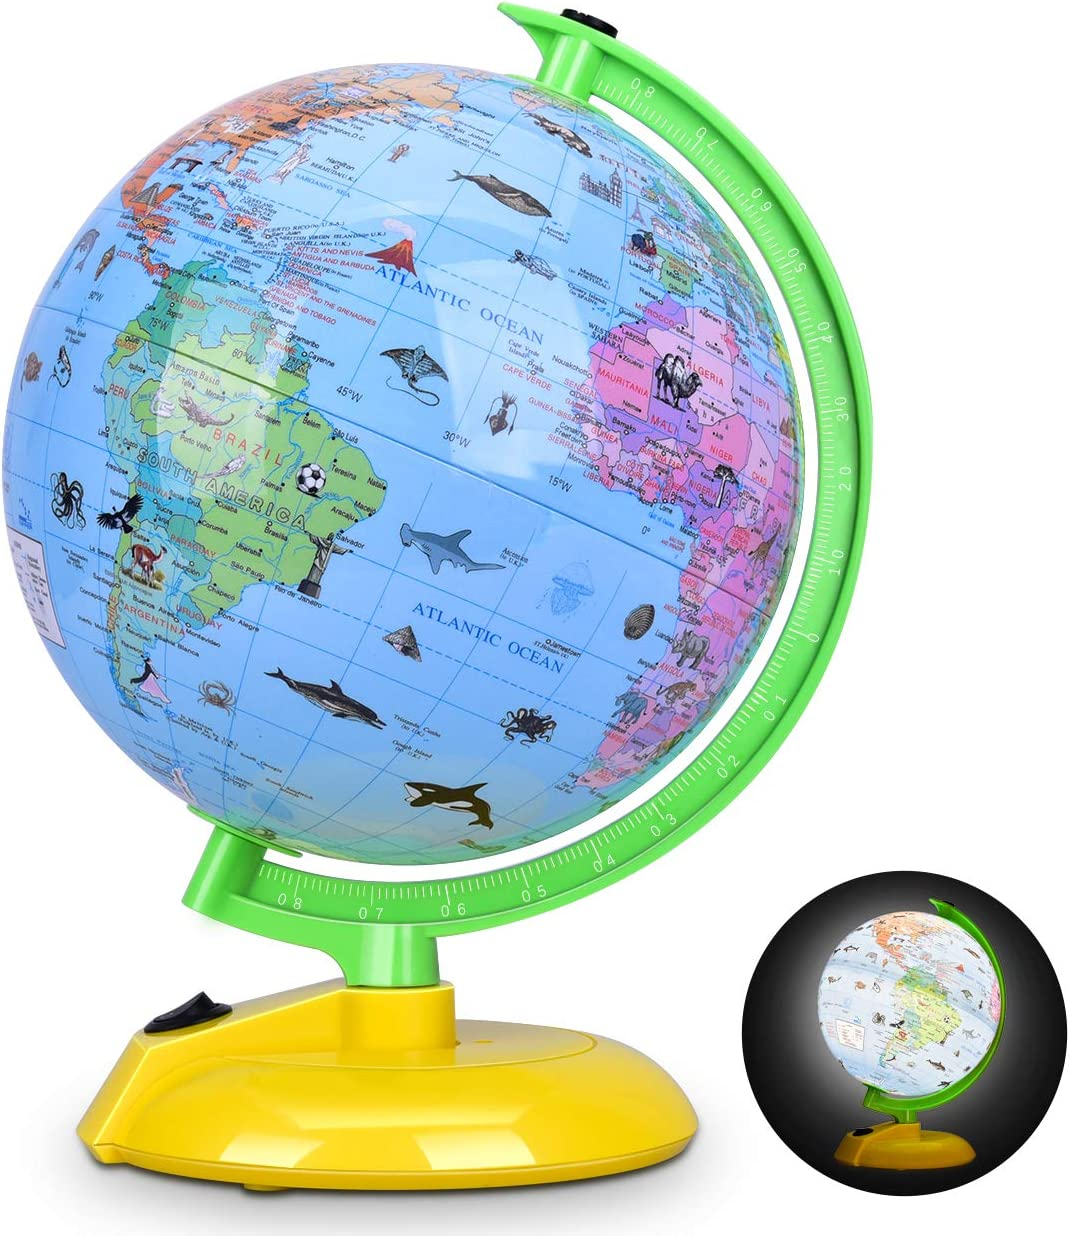 Illuminated World Globe For Kids 8 Desktop Globe Led Night Light With Stand Colorful Easy Read Battery Operation Globe Map Learning Tool Educational Gift For Student Office Products